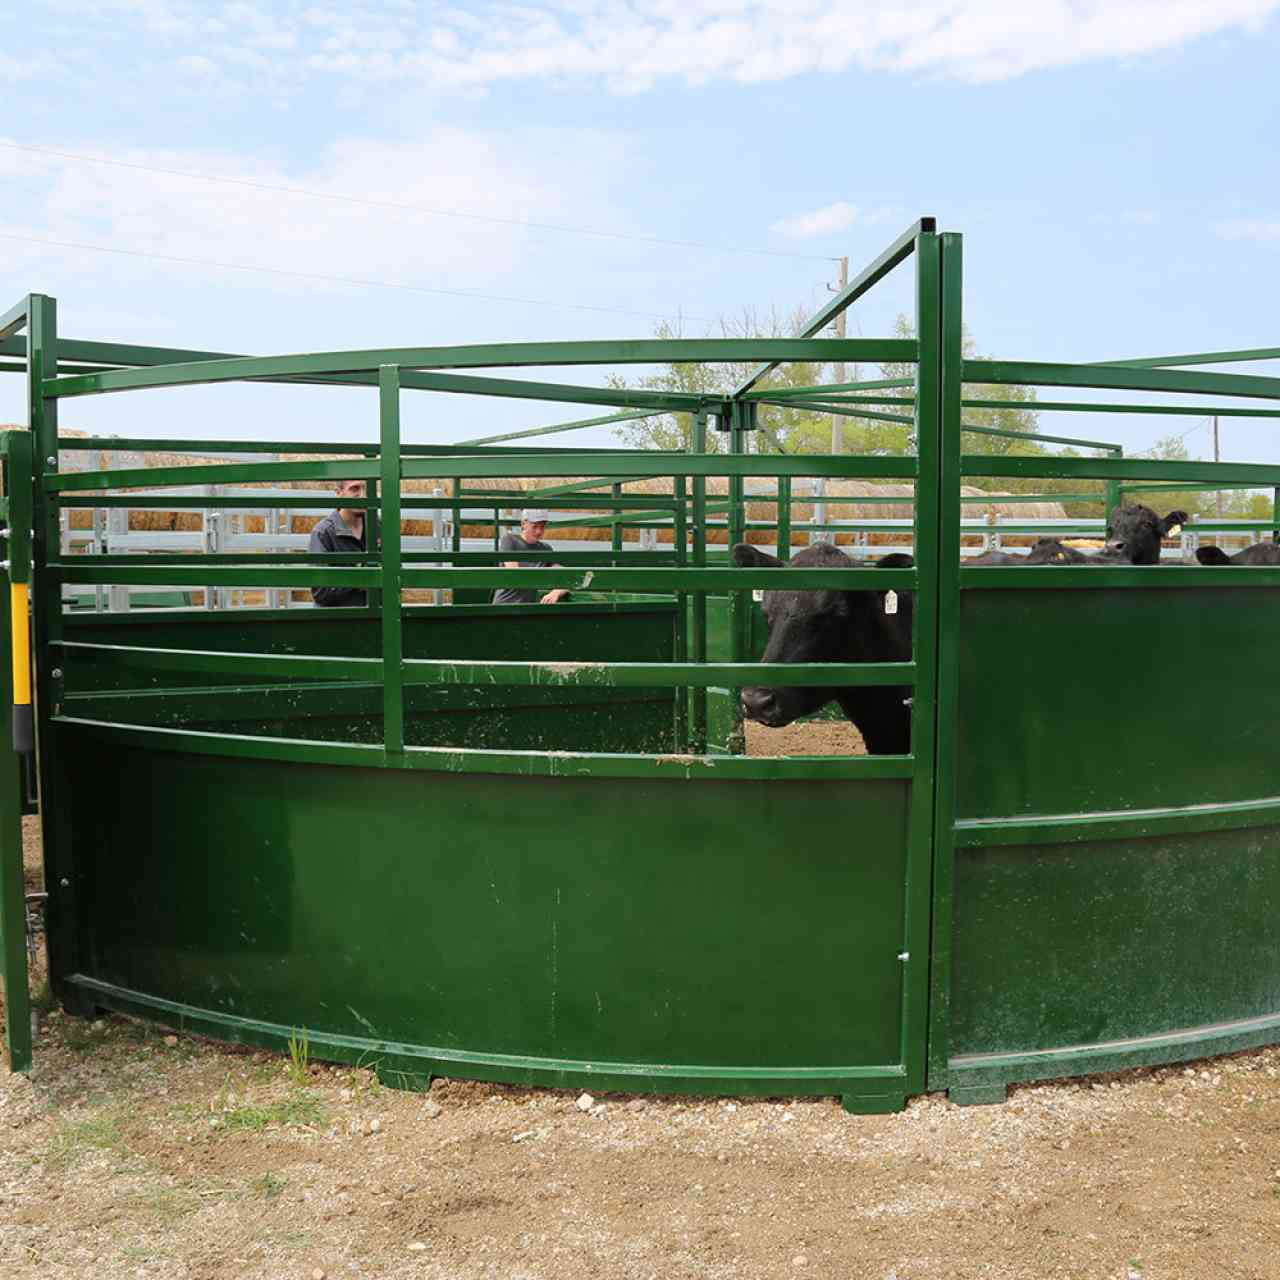 3E System using Cattle Crowding Tub with Cattle looking out.